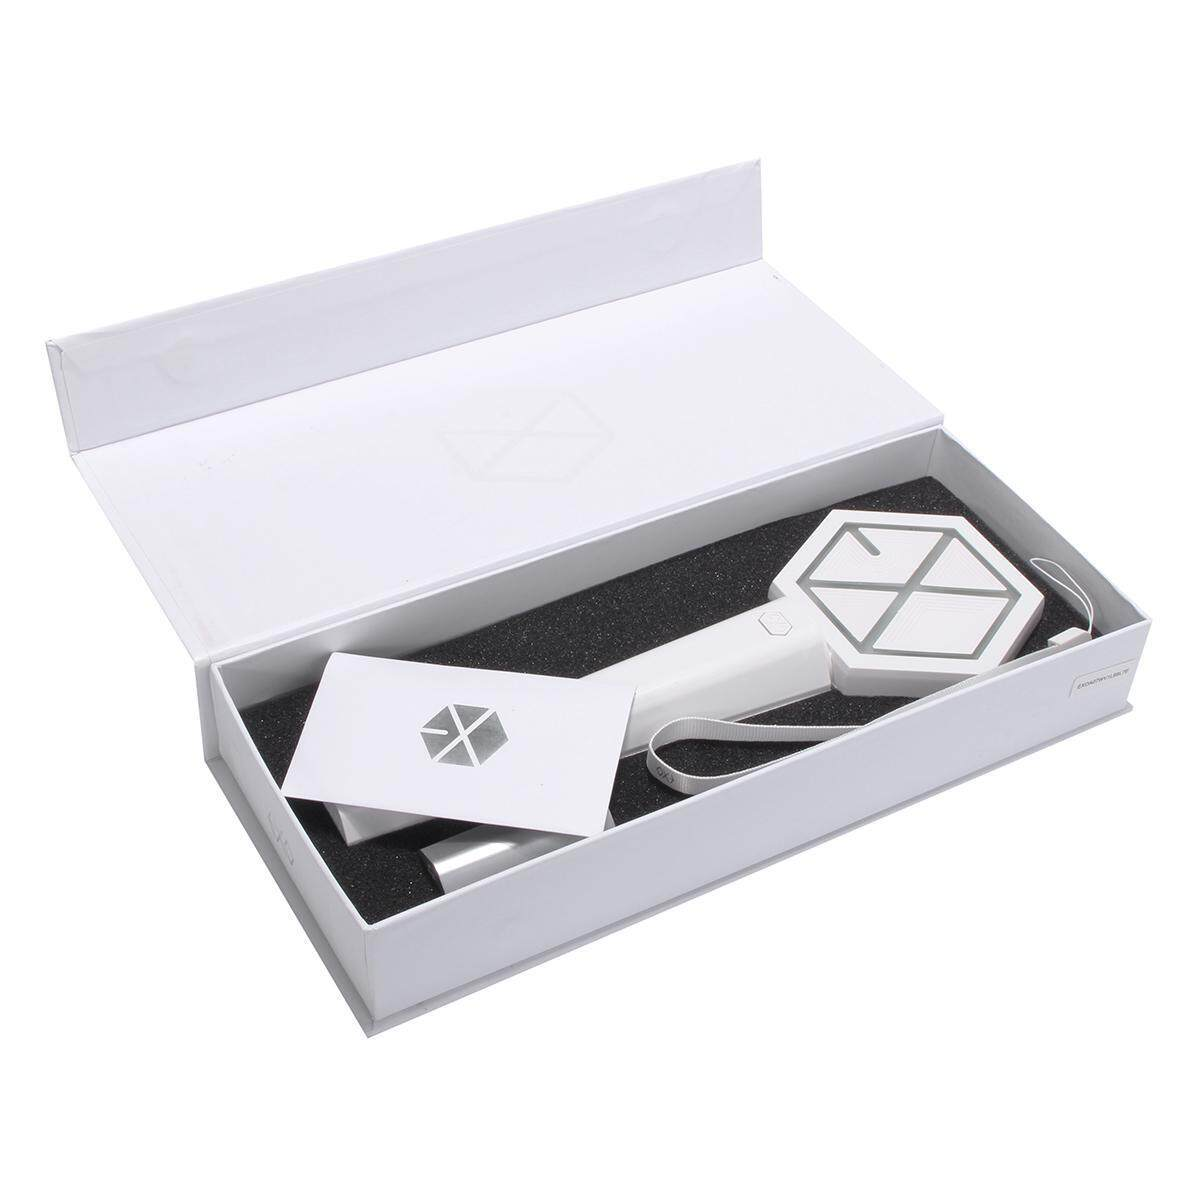 Specifications of Concert Ver 2.0 Lamp Glow Lightstick Gifts For KPOP EXO Chanyeol D.O Sehun